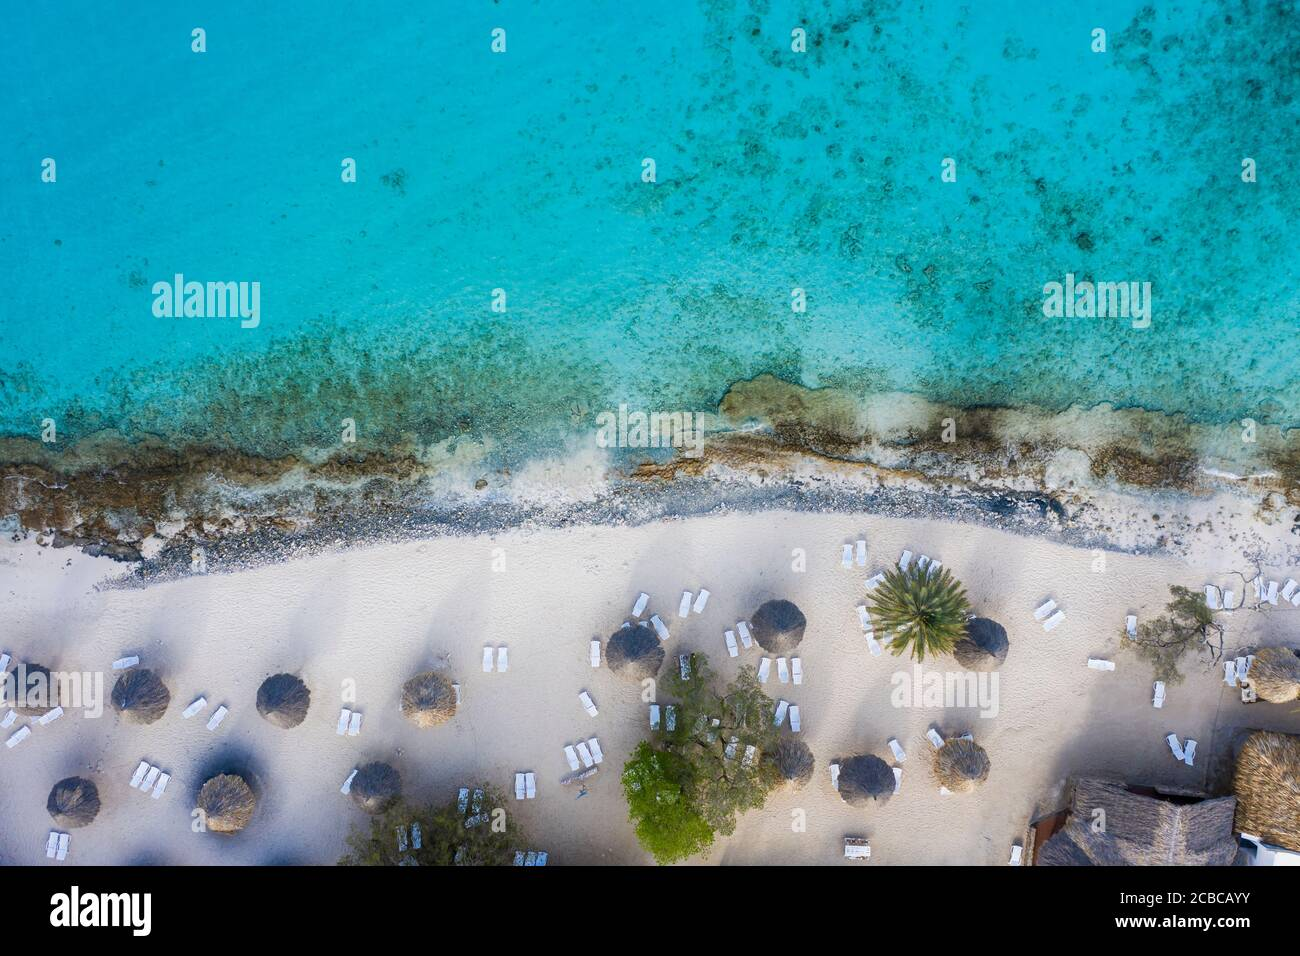 Aerial view of coast of Curaçao in the Caribbean Sea with turquoise water, cliff, beach and beautiful coral reef Stock Photo